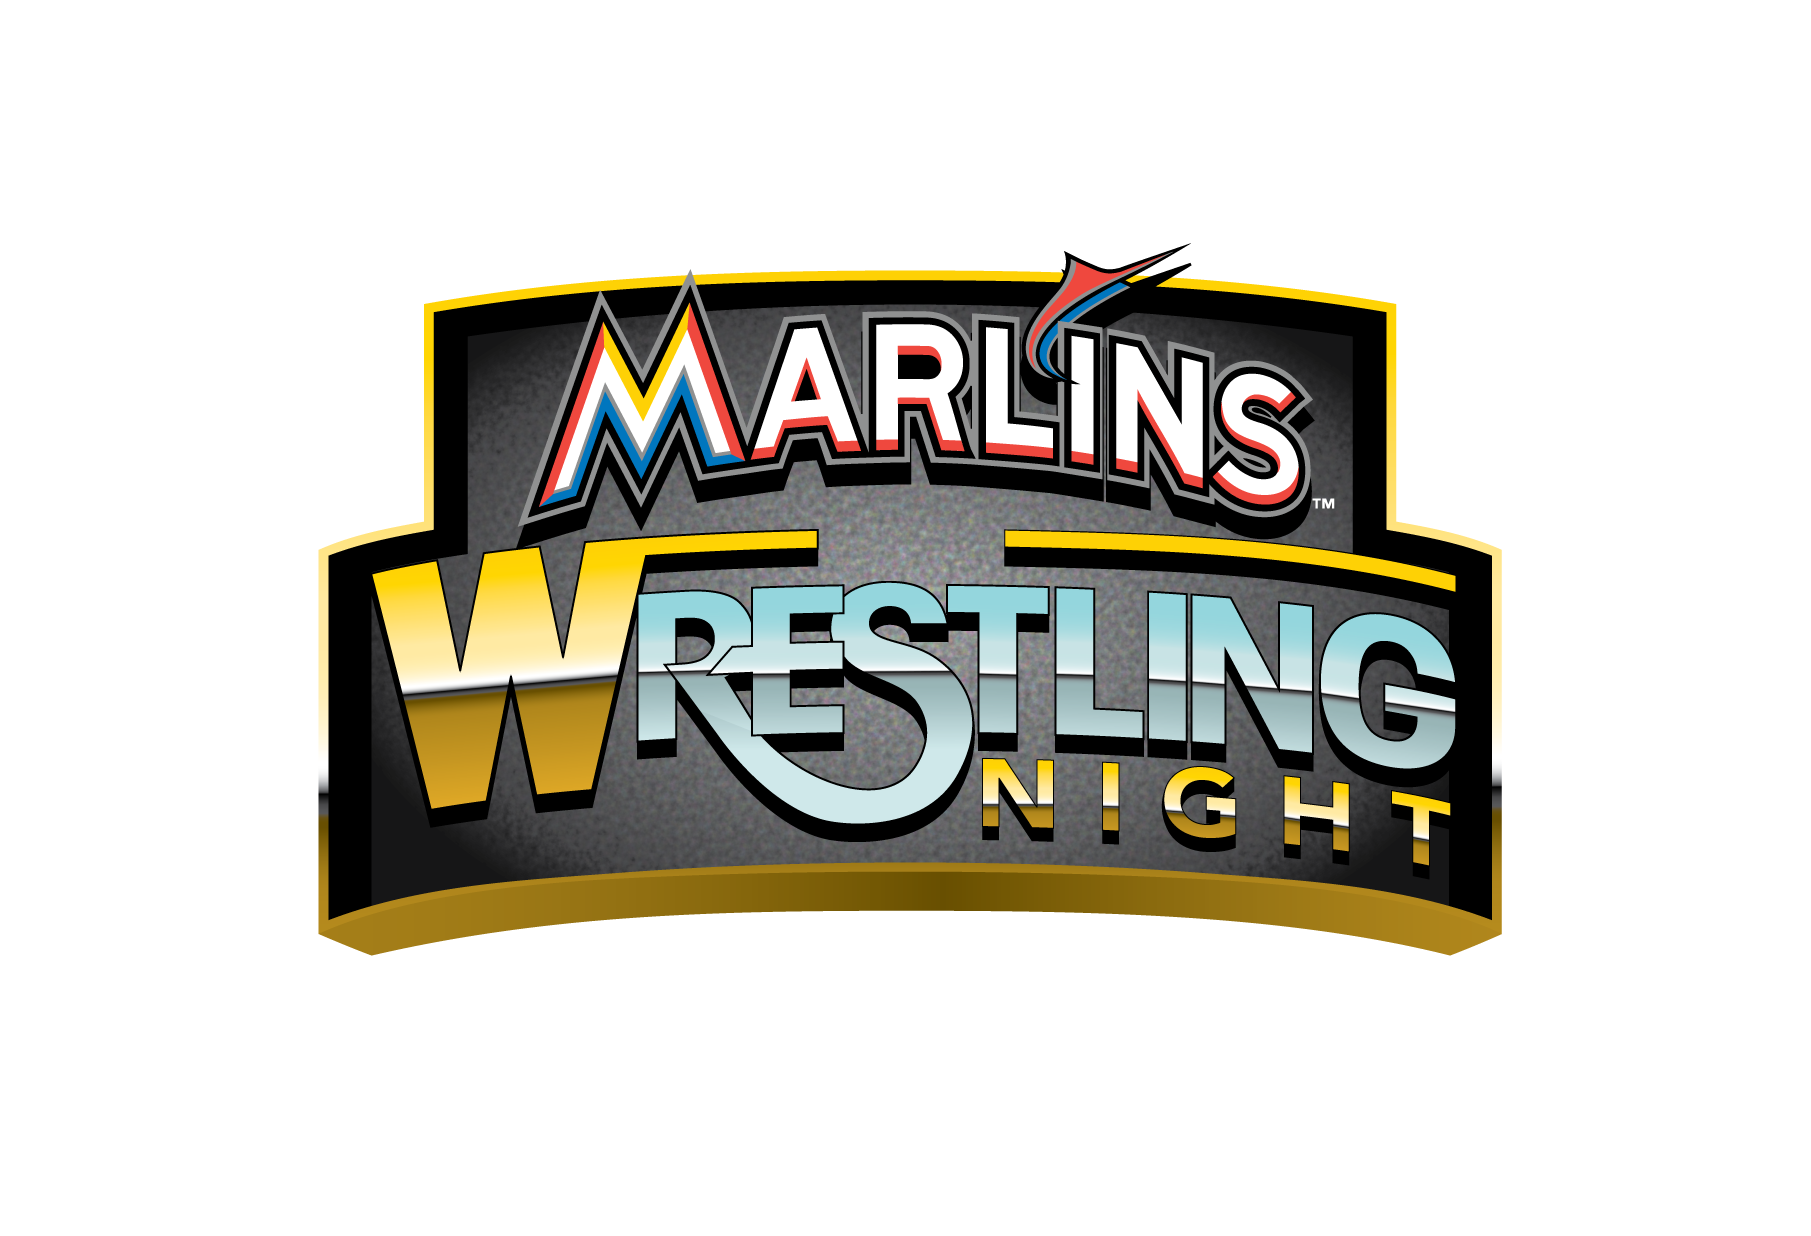 Wrestlers clipart sports meet. Miami marlins host wrestling